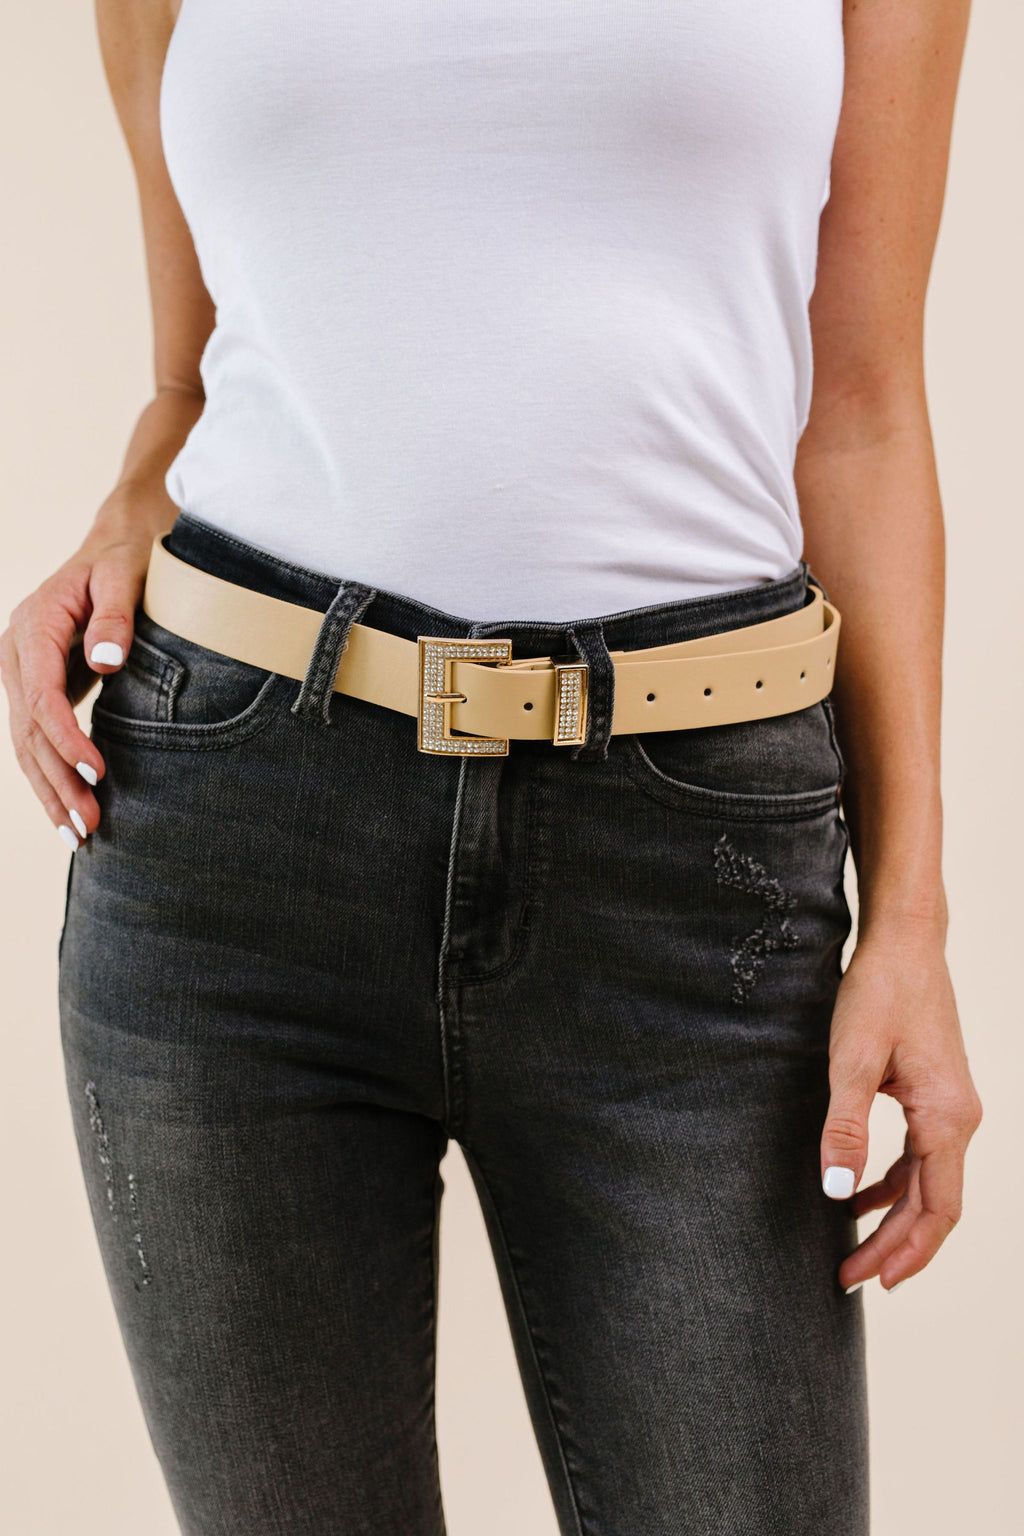 Just A Little Bling Belt In Natural - Amaranth Collection